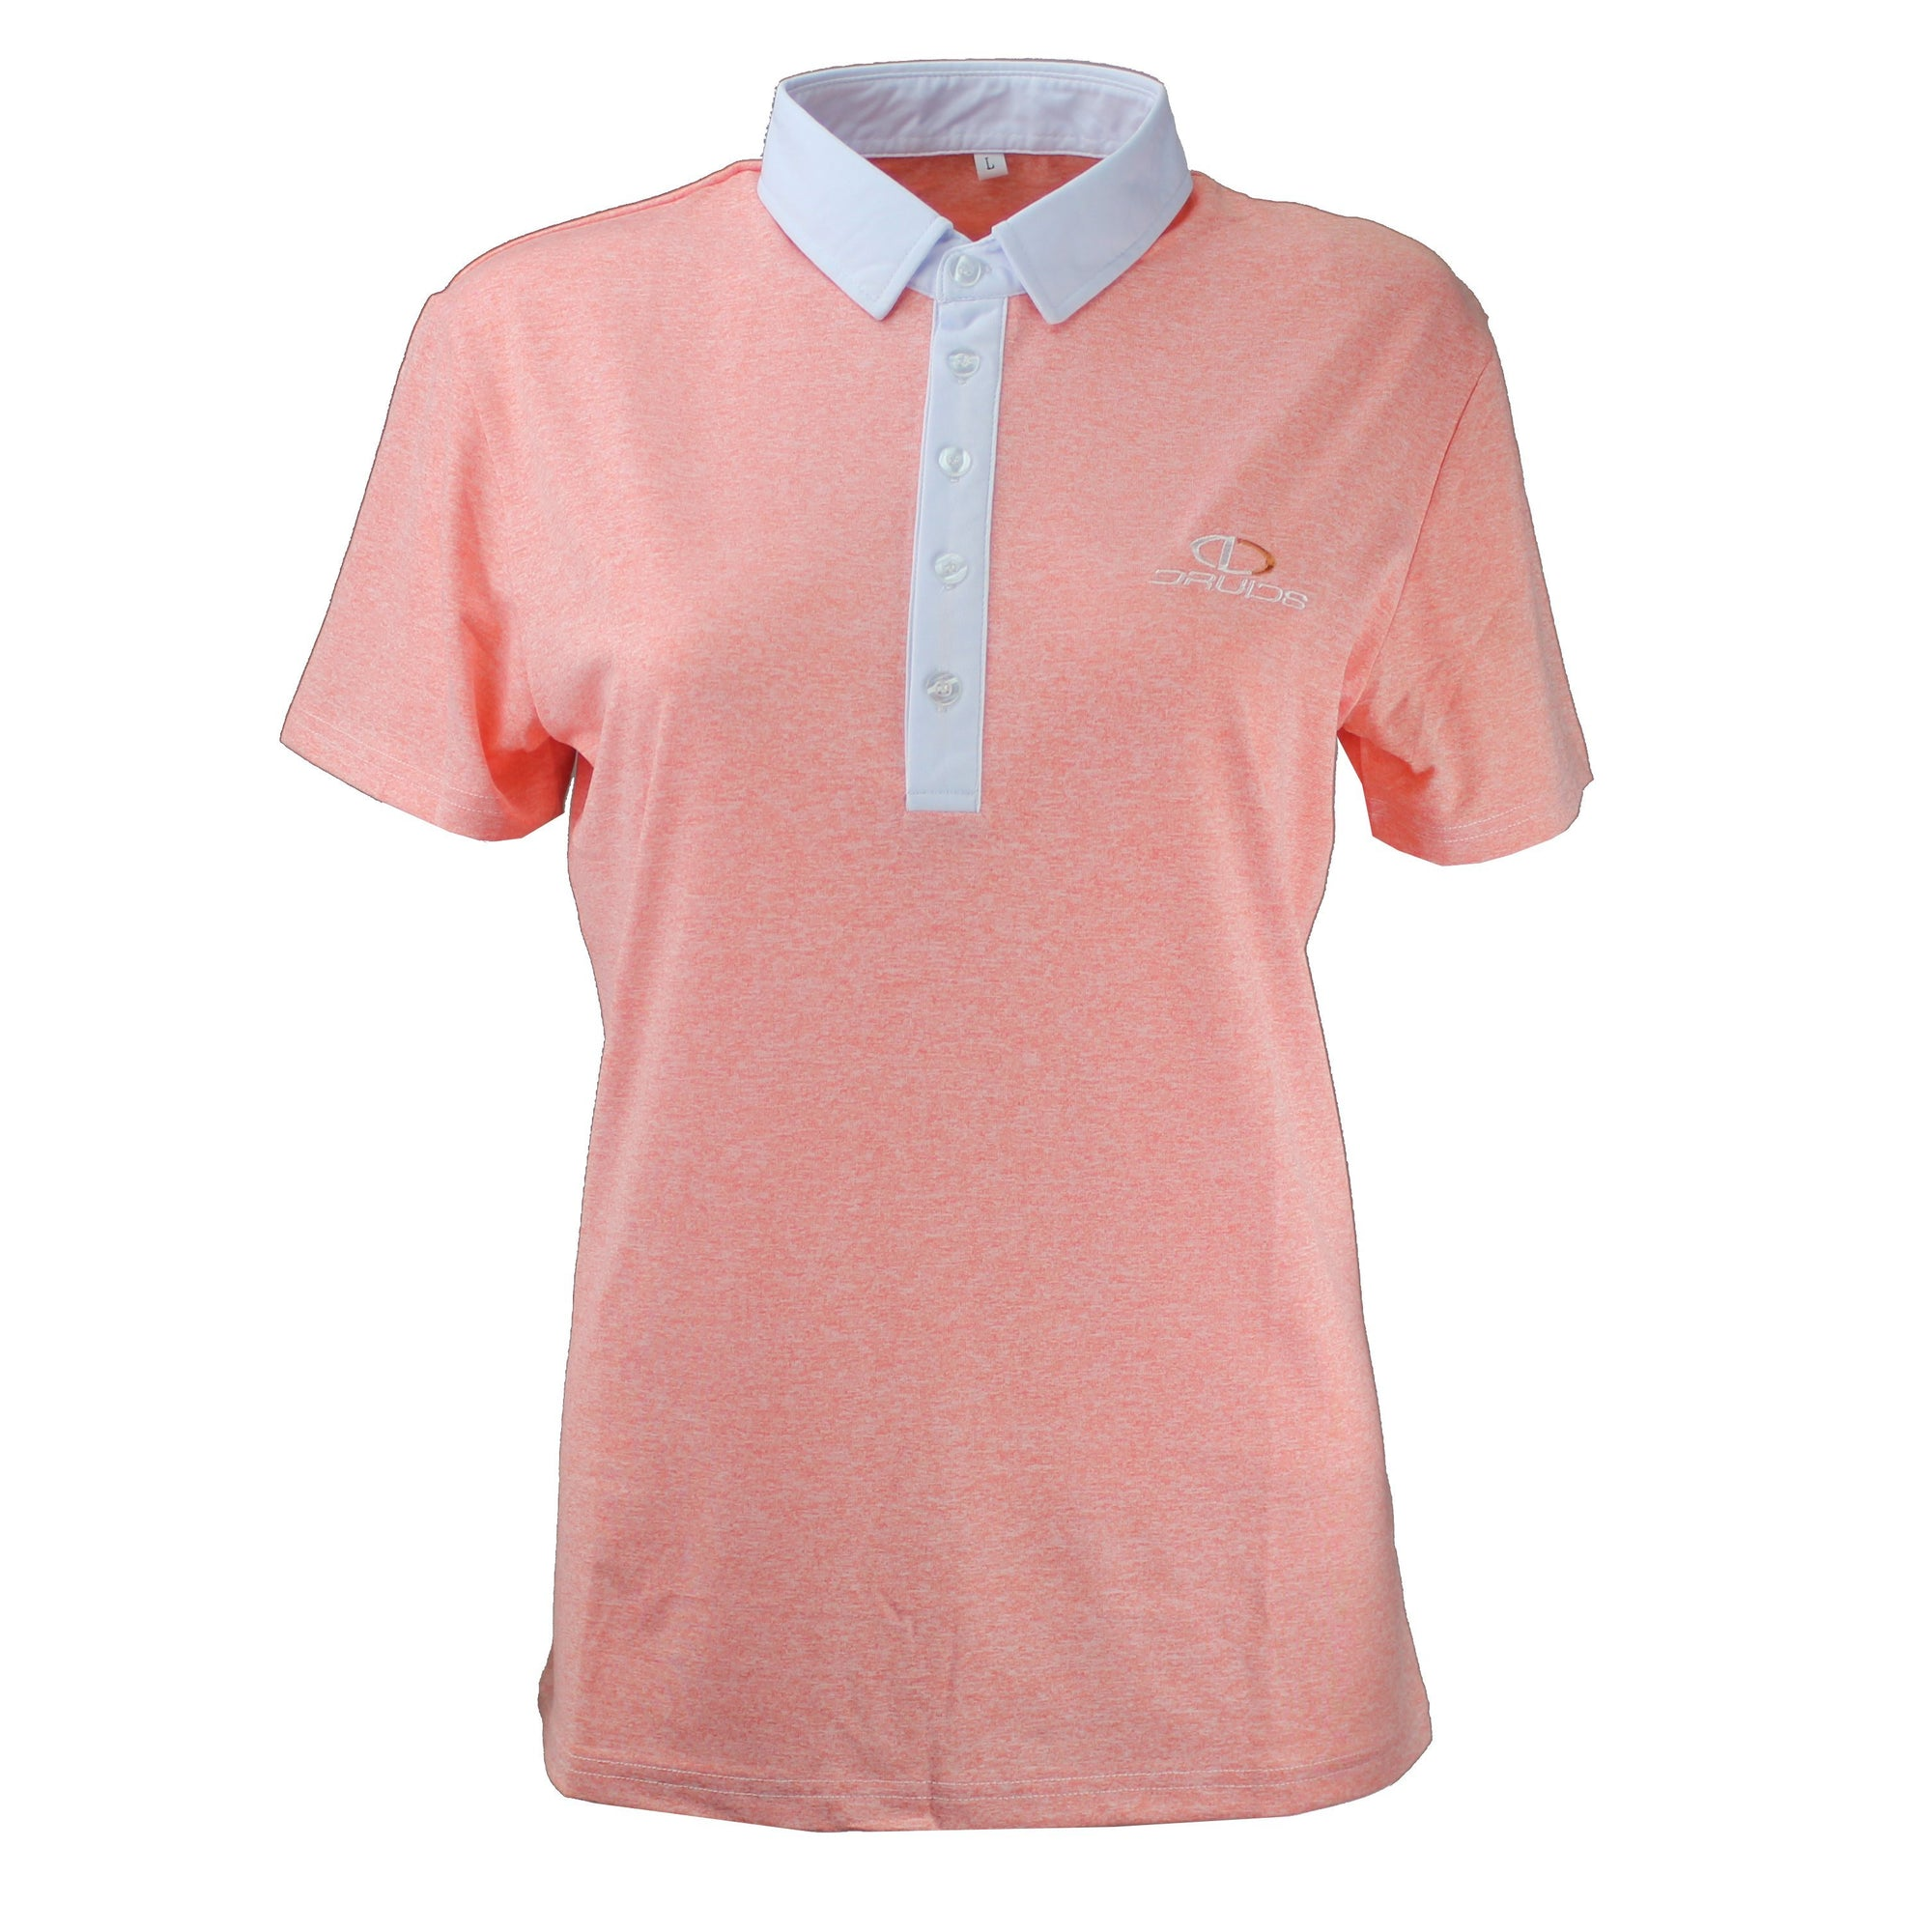 Druids Golf - Ladies Speckled Polo 2018 (Peach)